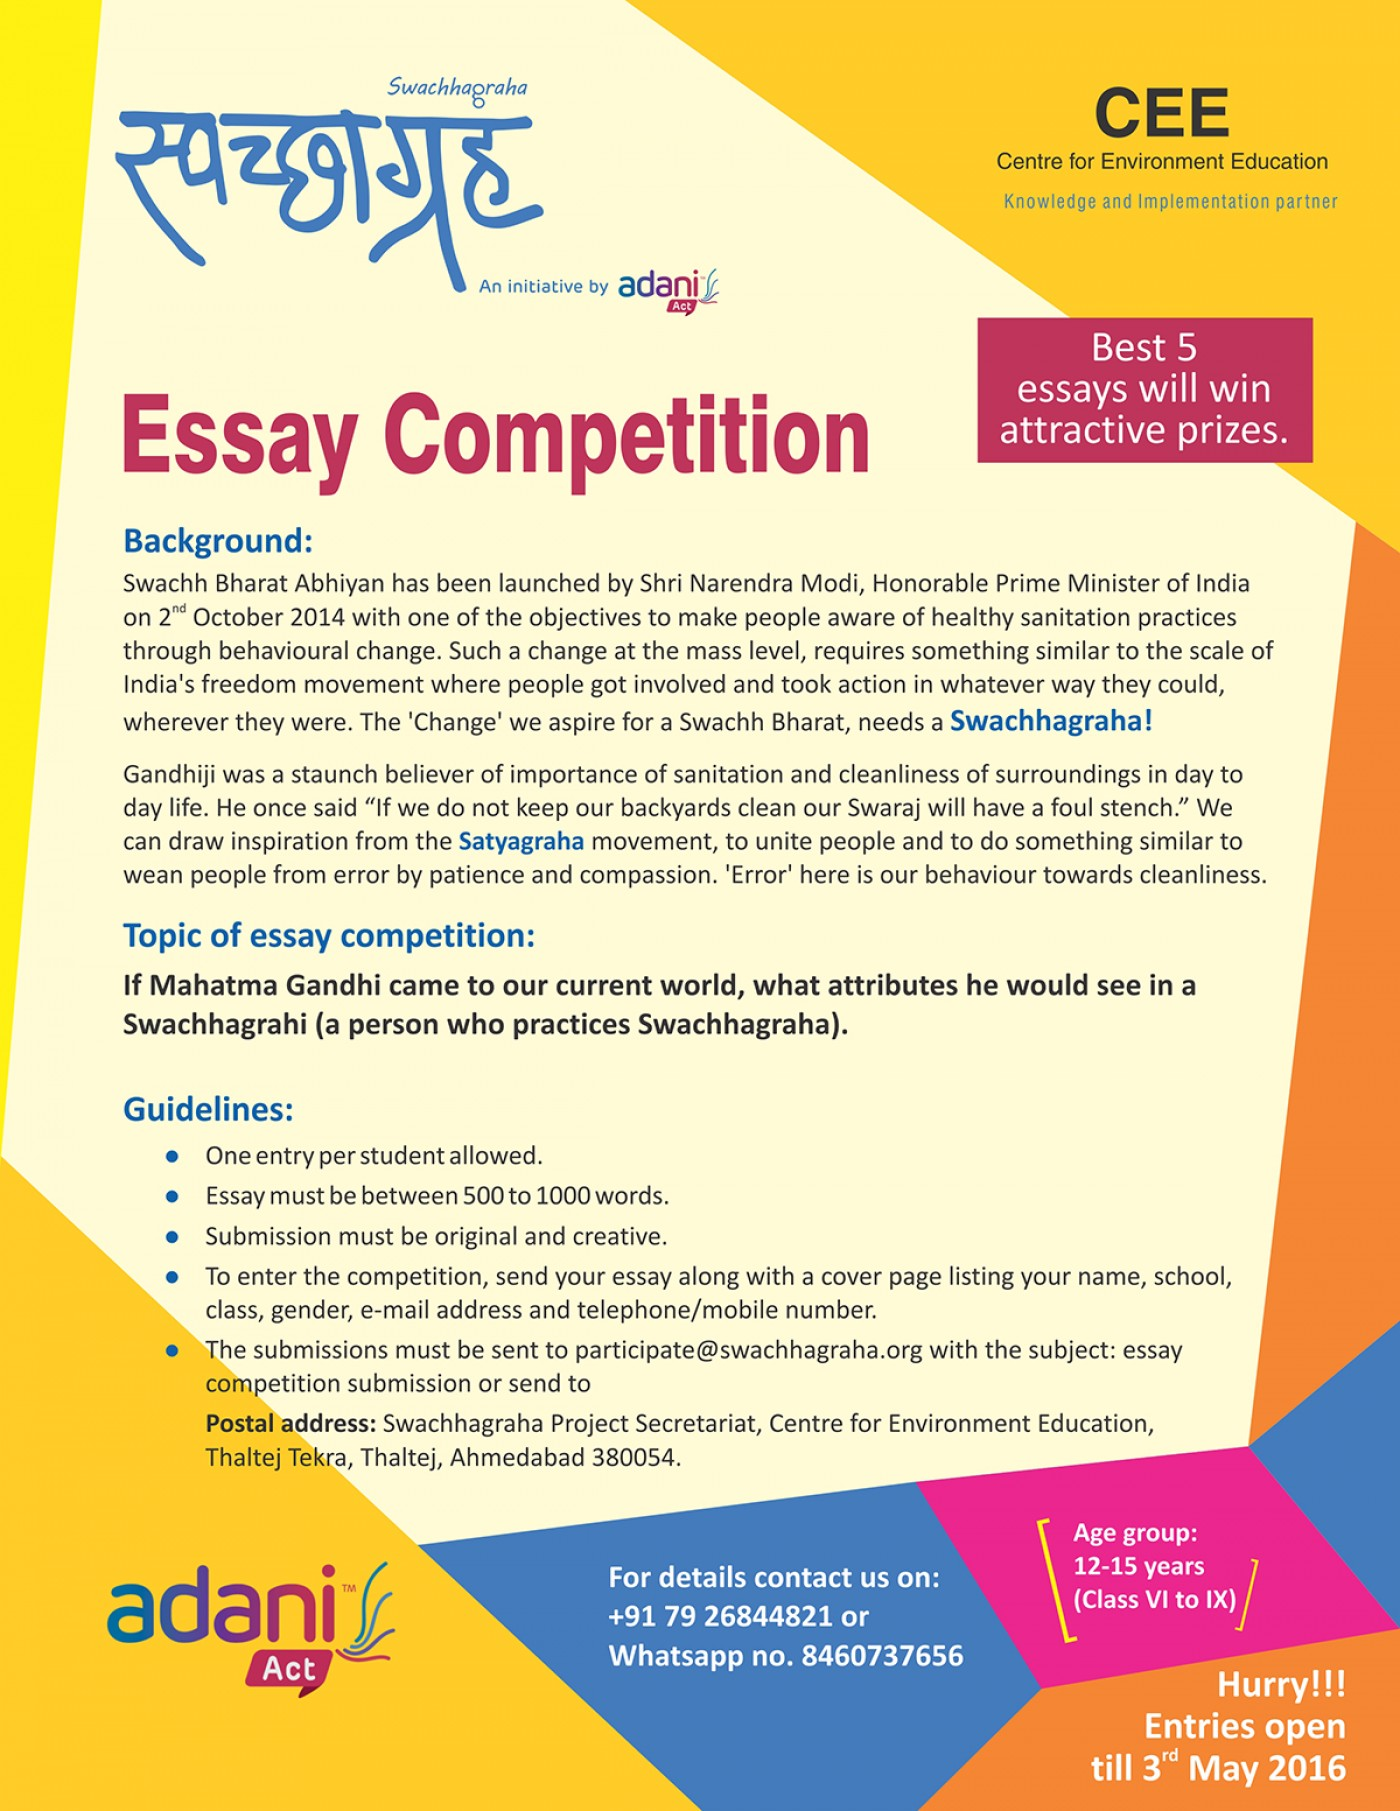 011 20180129171946essay20competition Essay About Cleanliness In School Phenomenal Campaign On Toilets And Its Surrounding Persuasive 1400